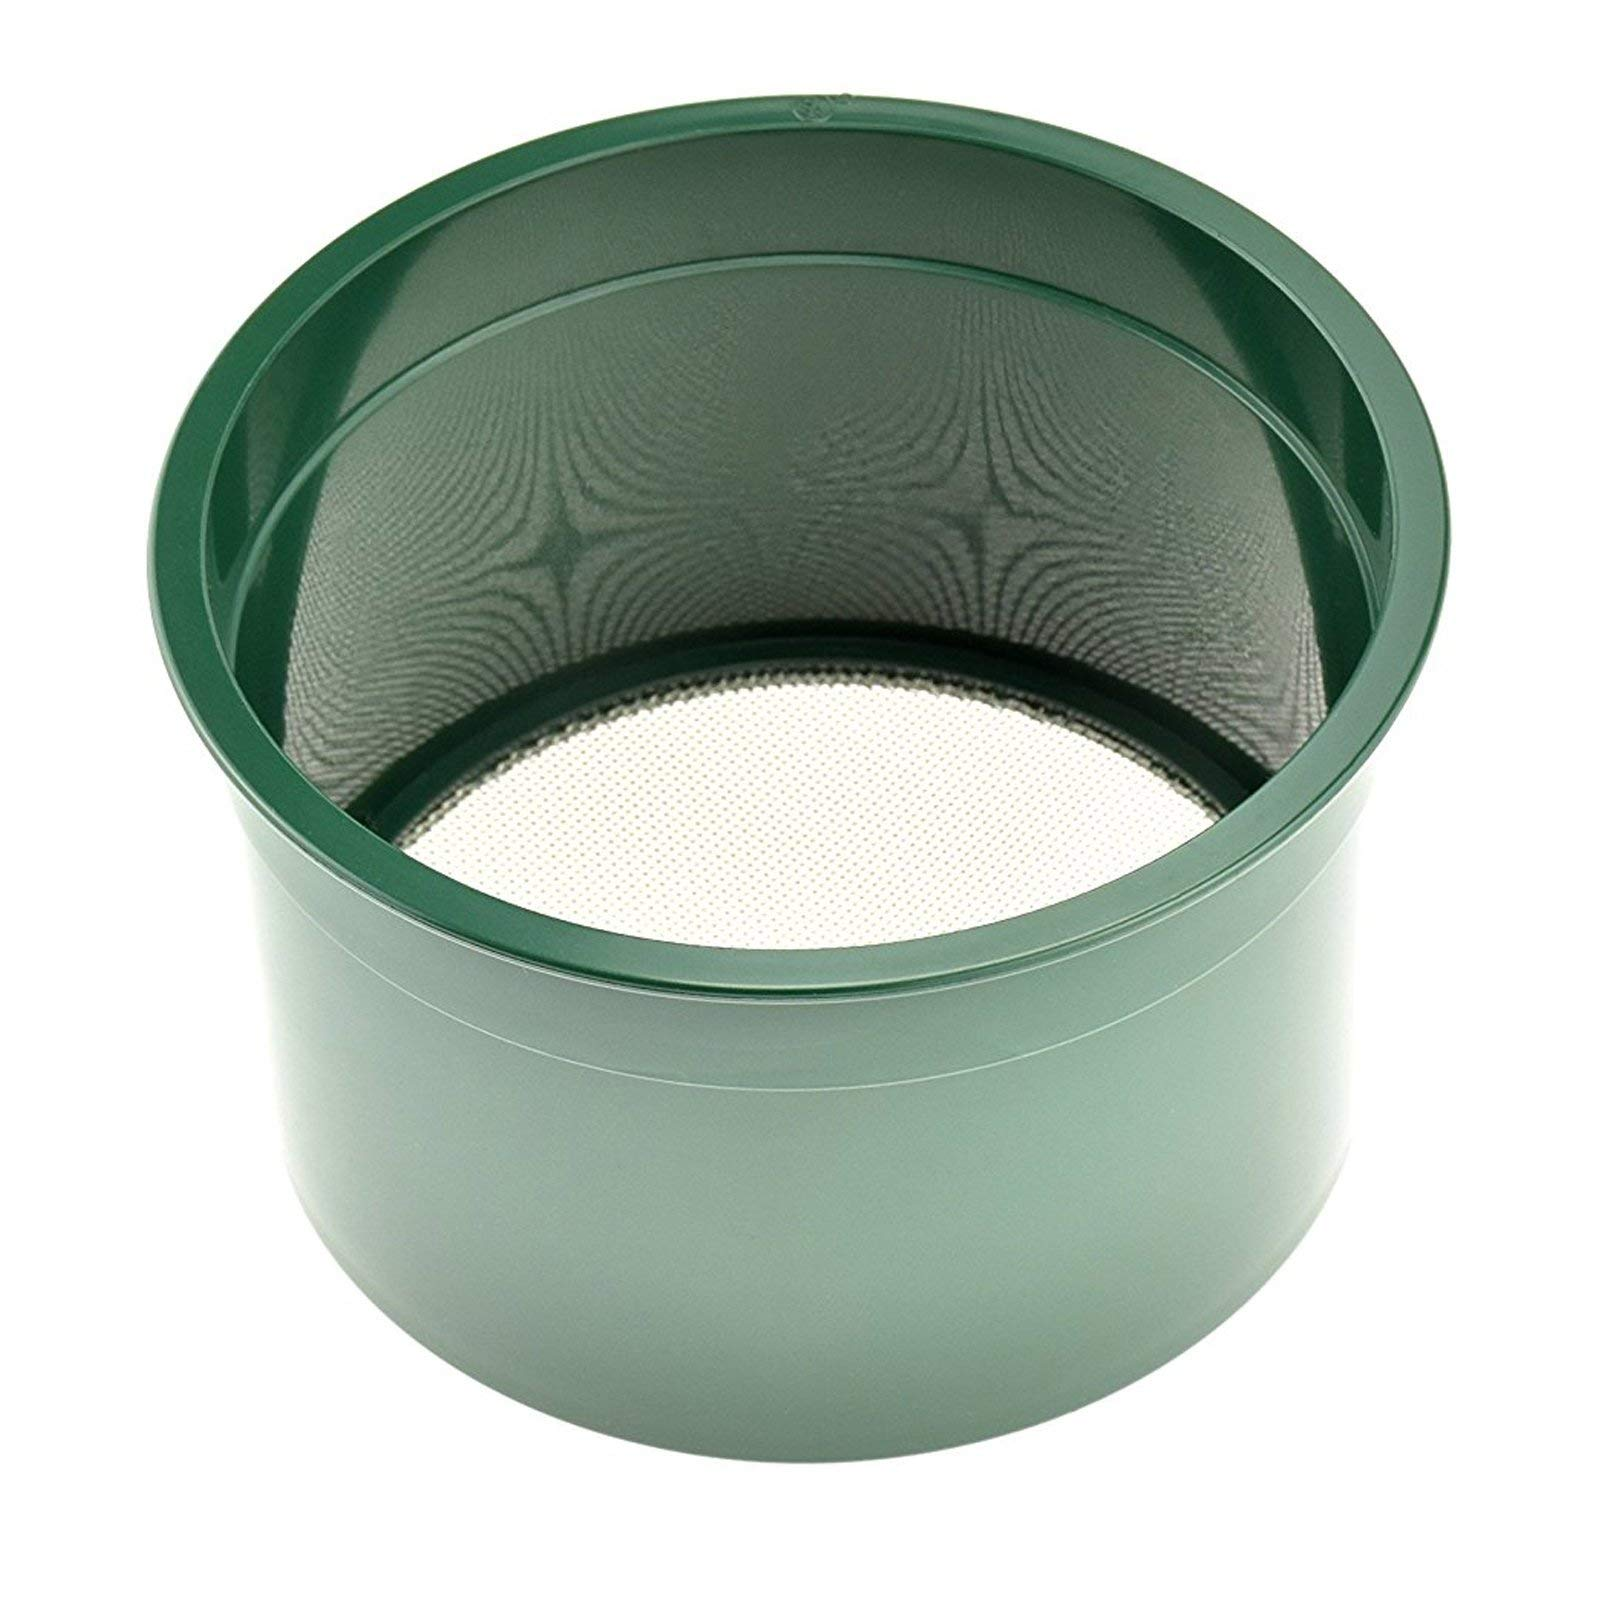 ASR Outdoor Gold Rush Sifting Classifier Sieve Mini 6 Inch Prospect Pan 20 Holes per Sq Inch by ASR Outdoor